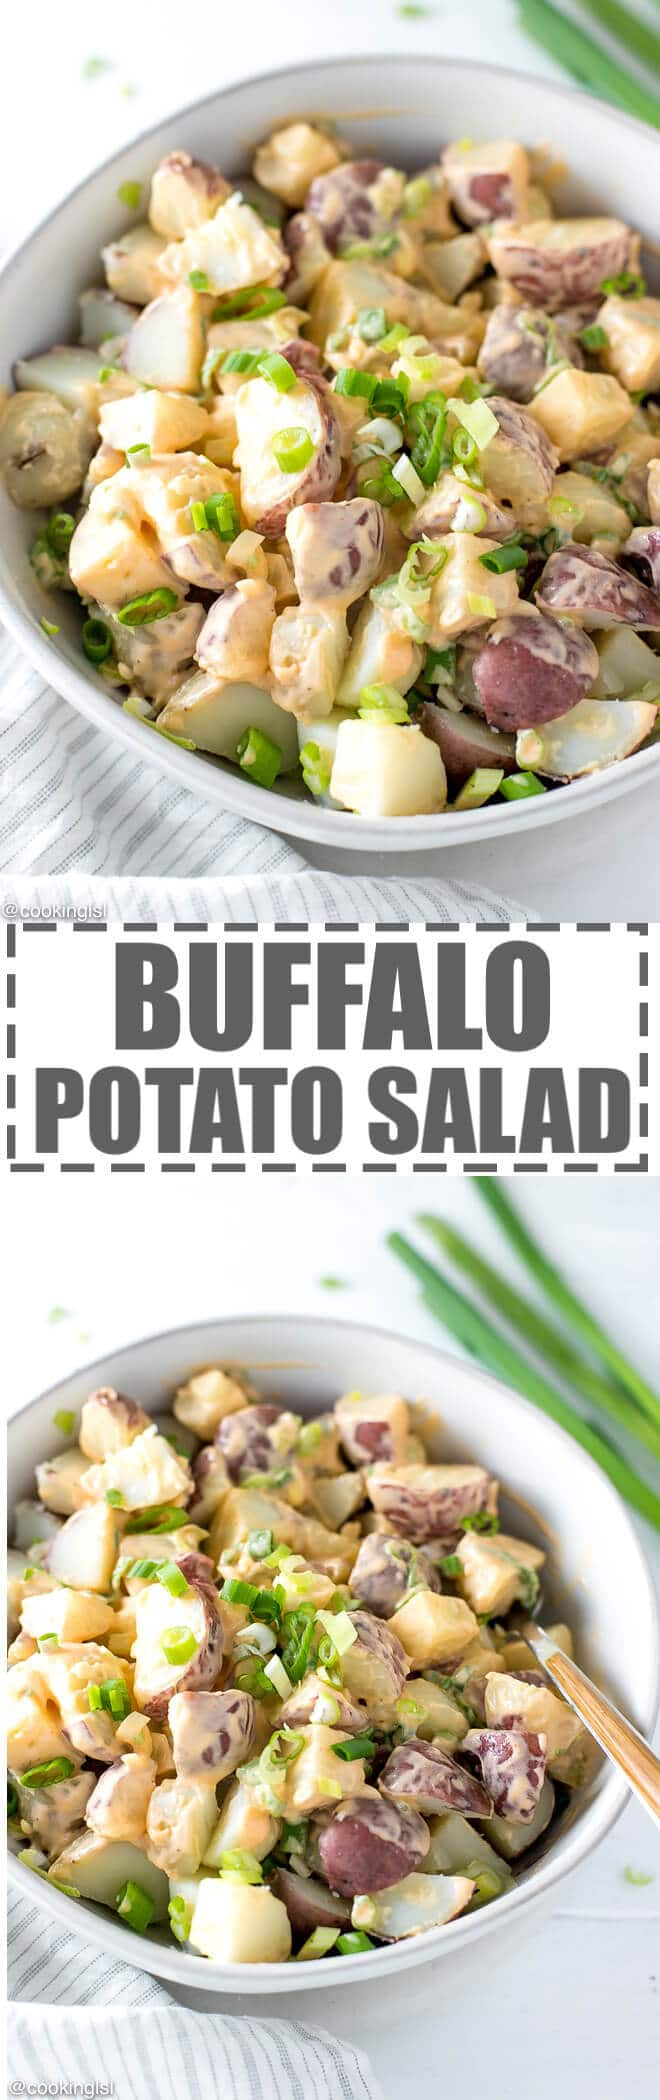 Buffalo Potato Salad Recipe - boiled small red potatoes with a creamy buffalo dressing, made with hot buffalo sauce, mayo and yogurt. Topped with chopped scallions. Great for a party, game day or celebration. Low calorie and full of flavor.